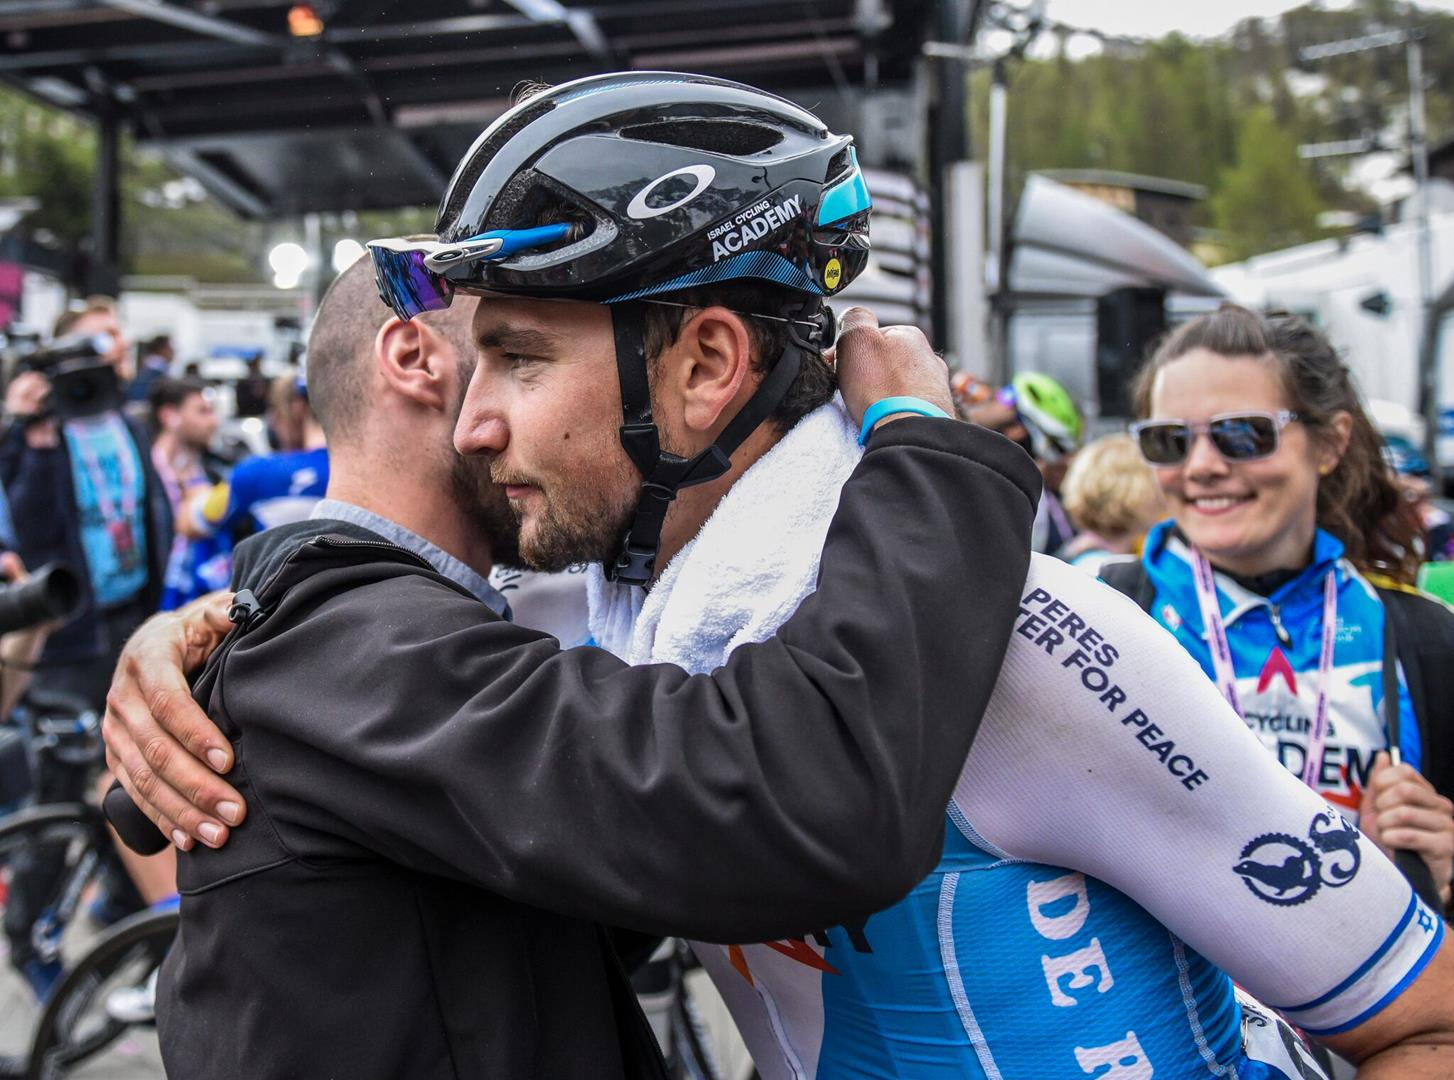 with-guy-sagiv-after-the-giro-finish-2018-copy